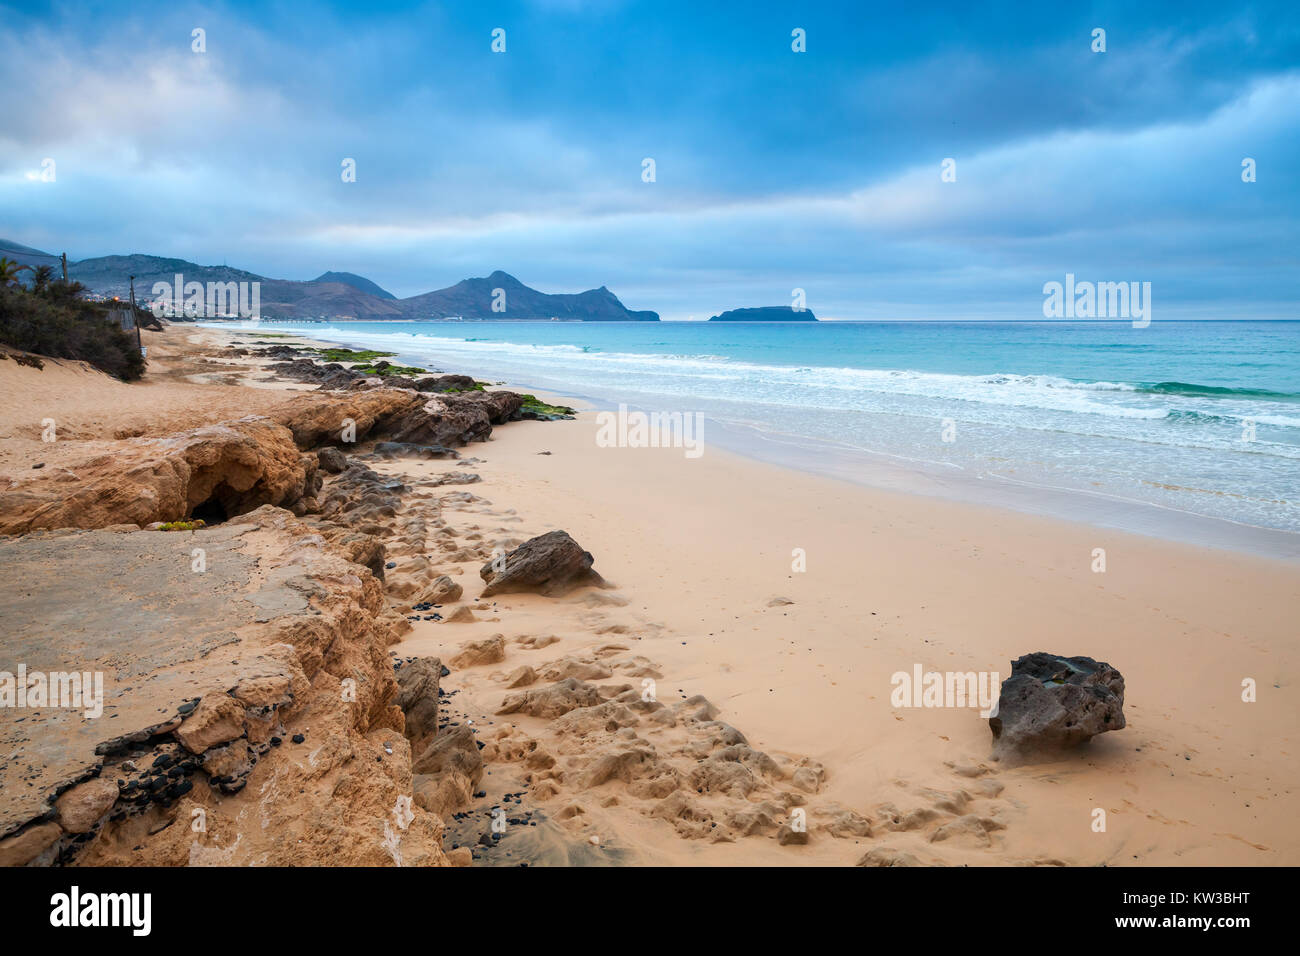 Sandstone rocks on the beach of Porto Santo island, Madeira archipelago, Portugal Stock Photo